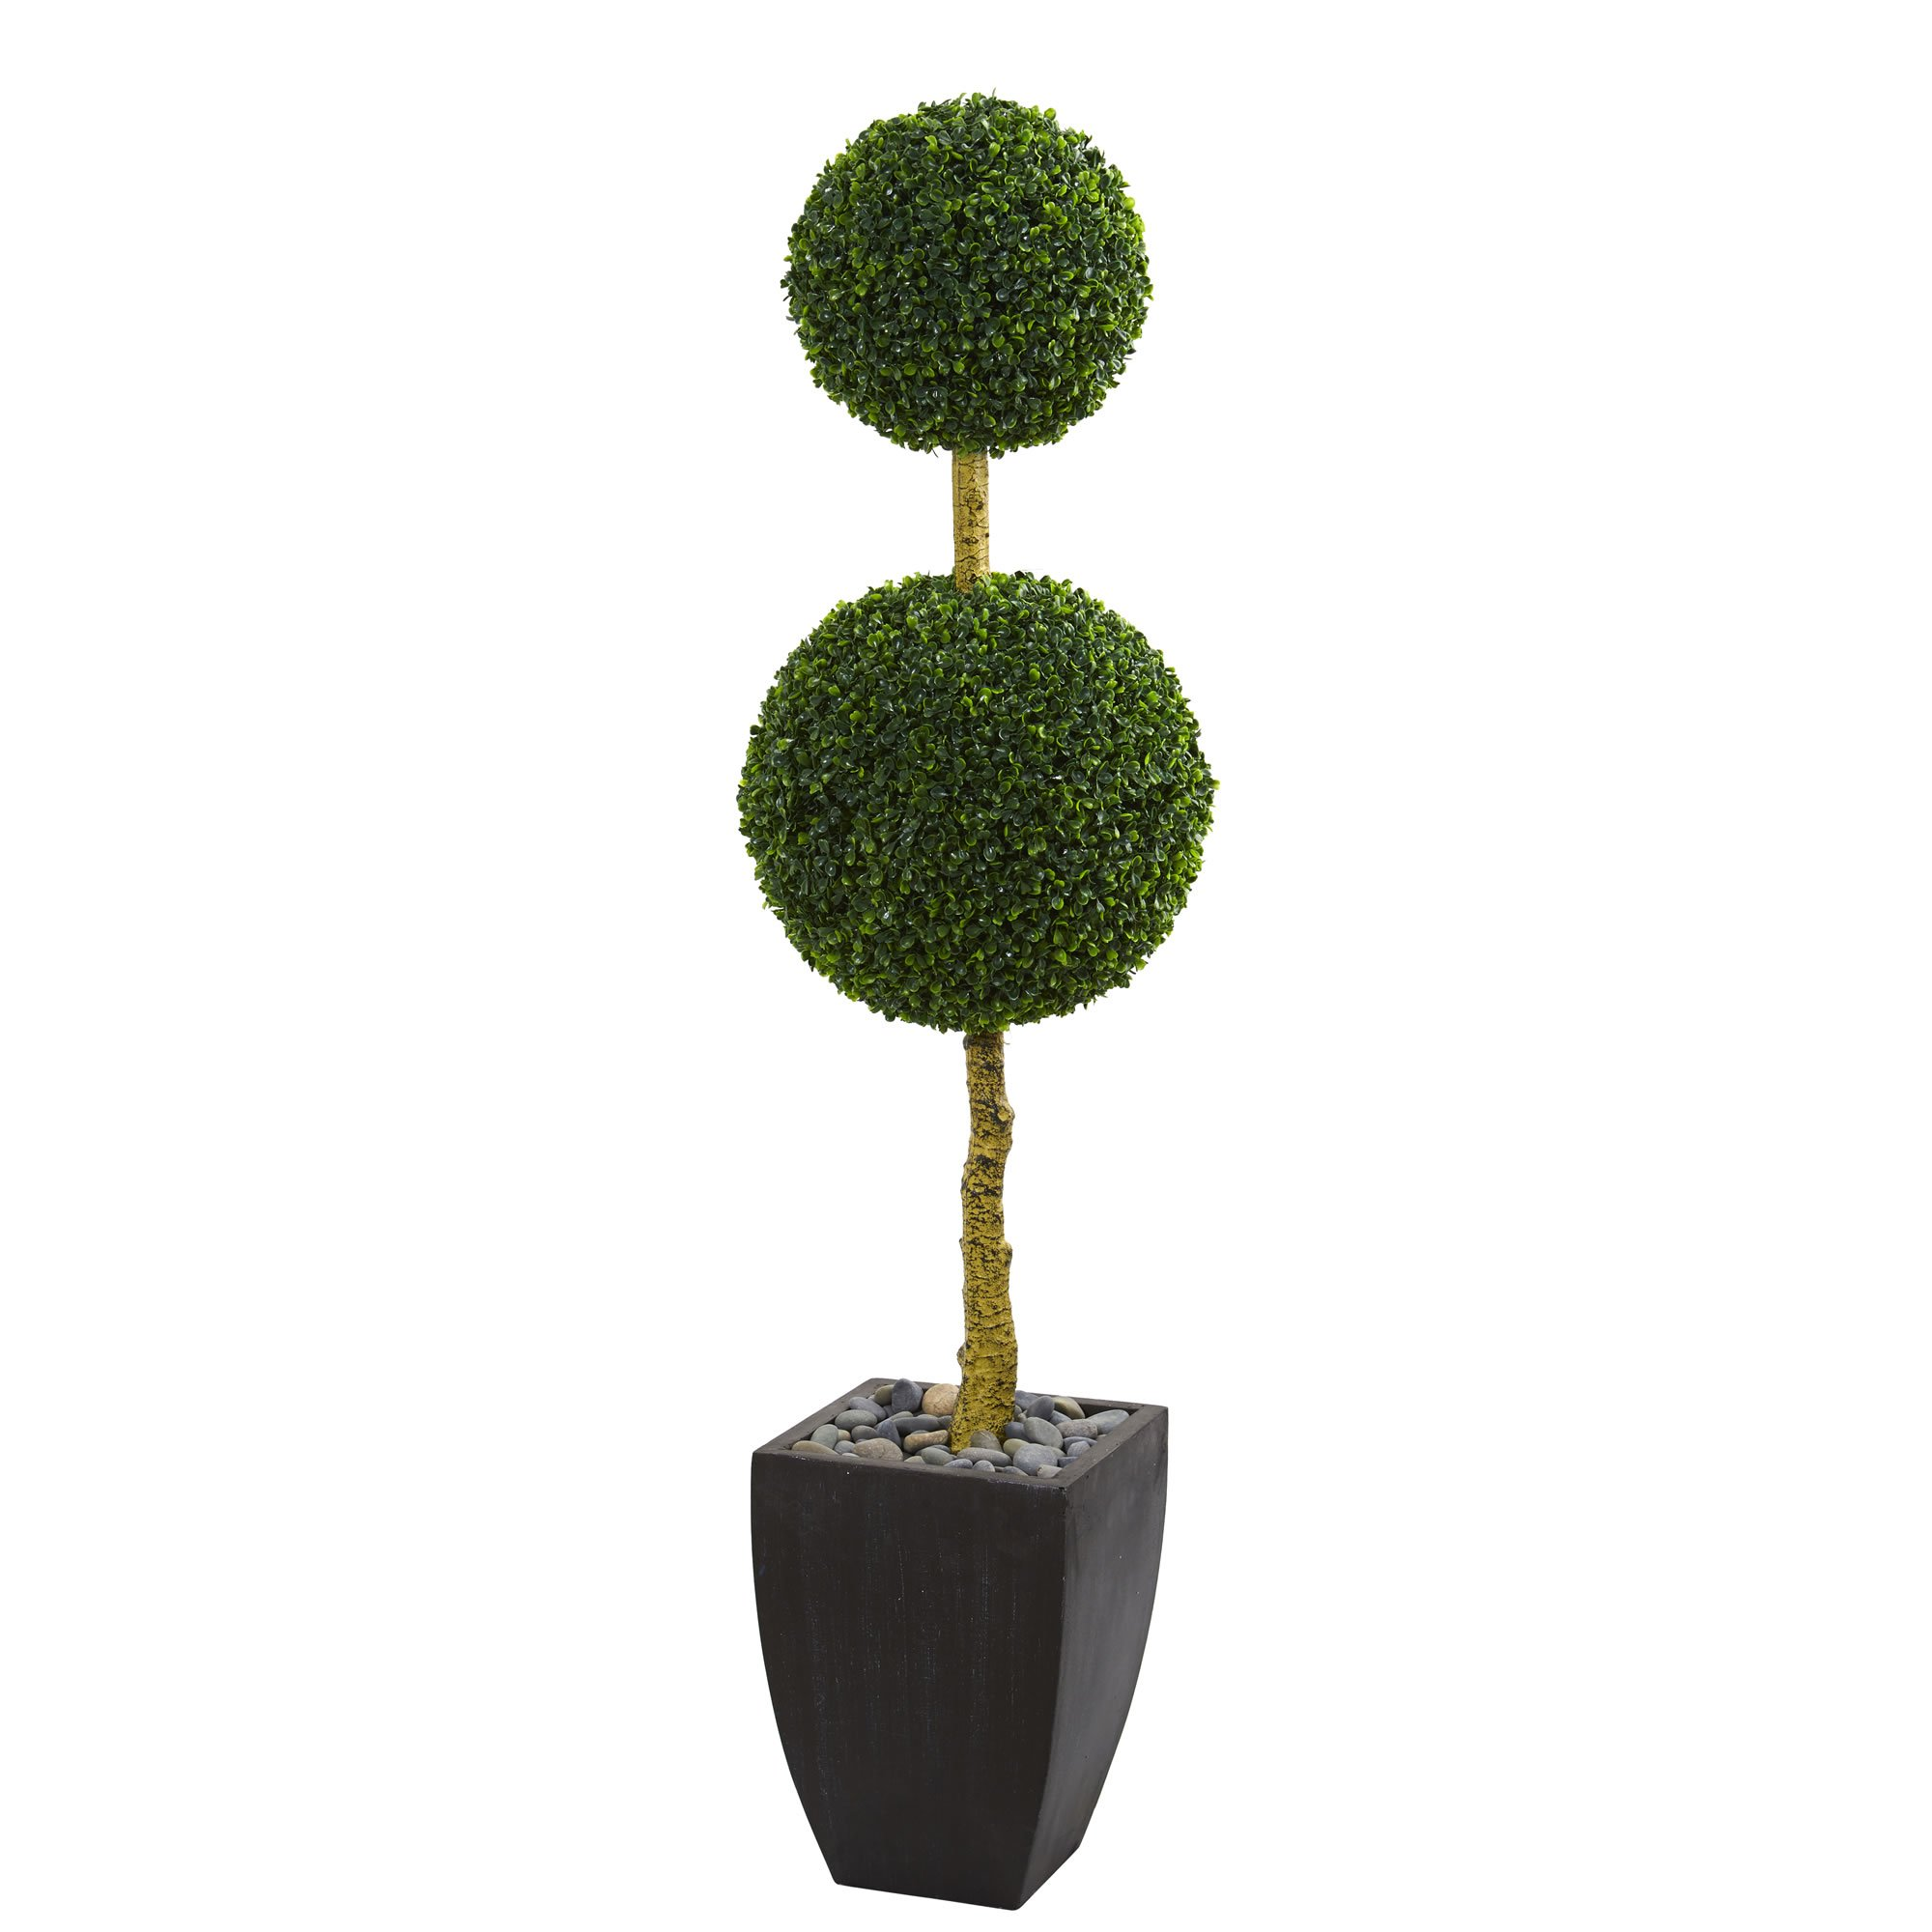 U double ball boxwood topiary artificial tree in black wash planter